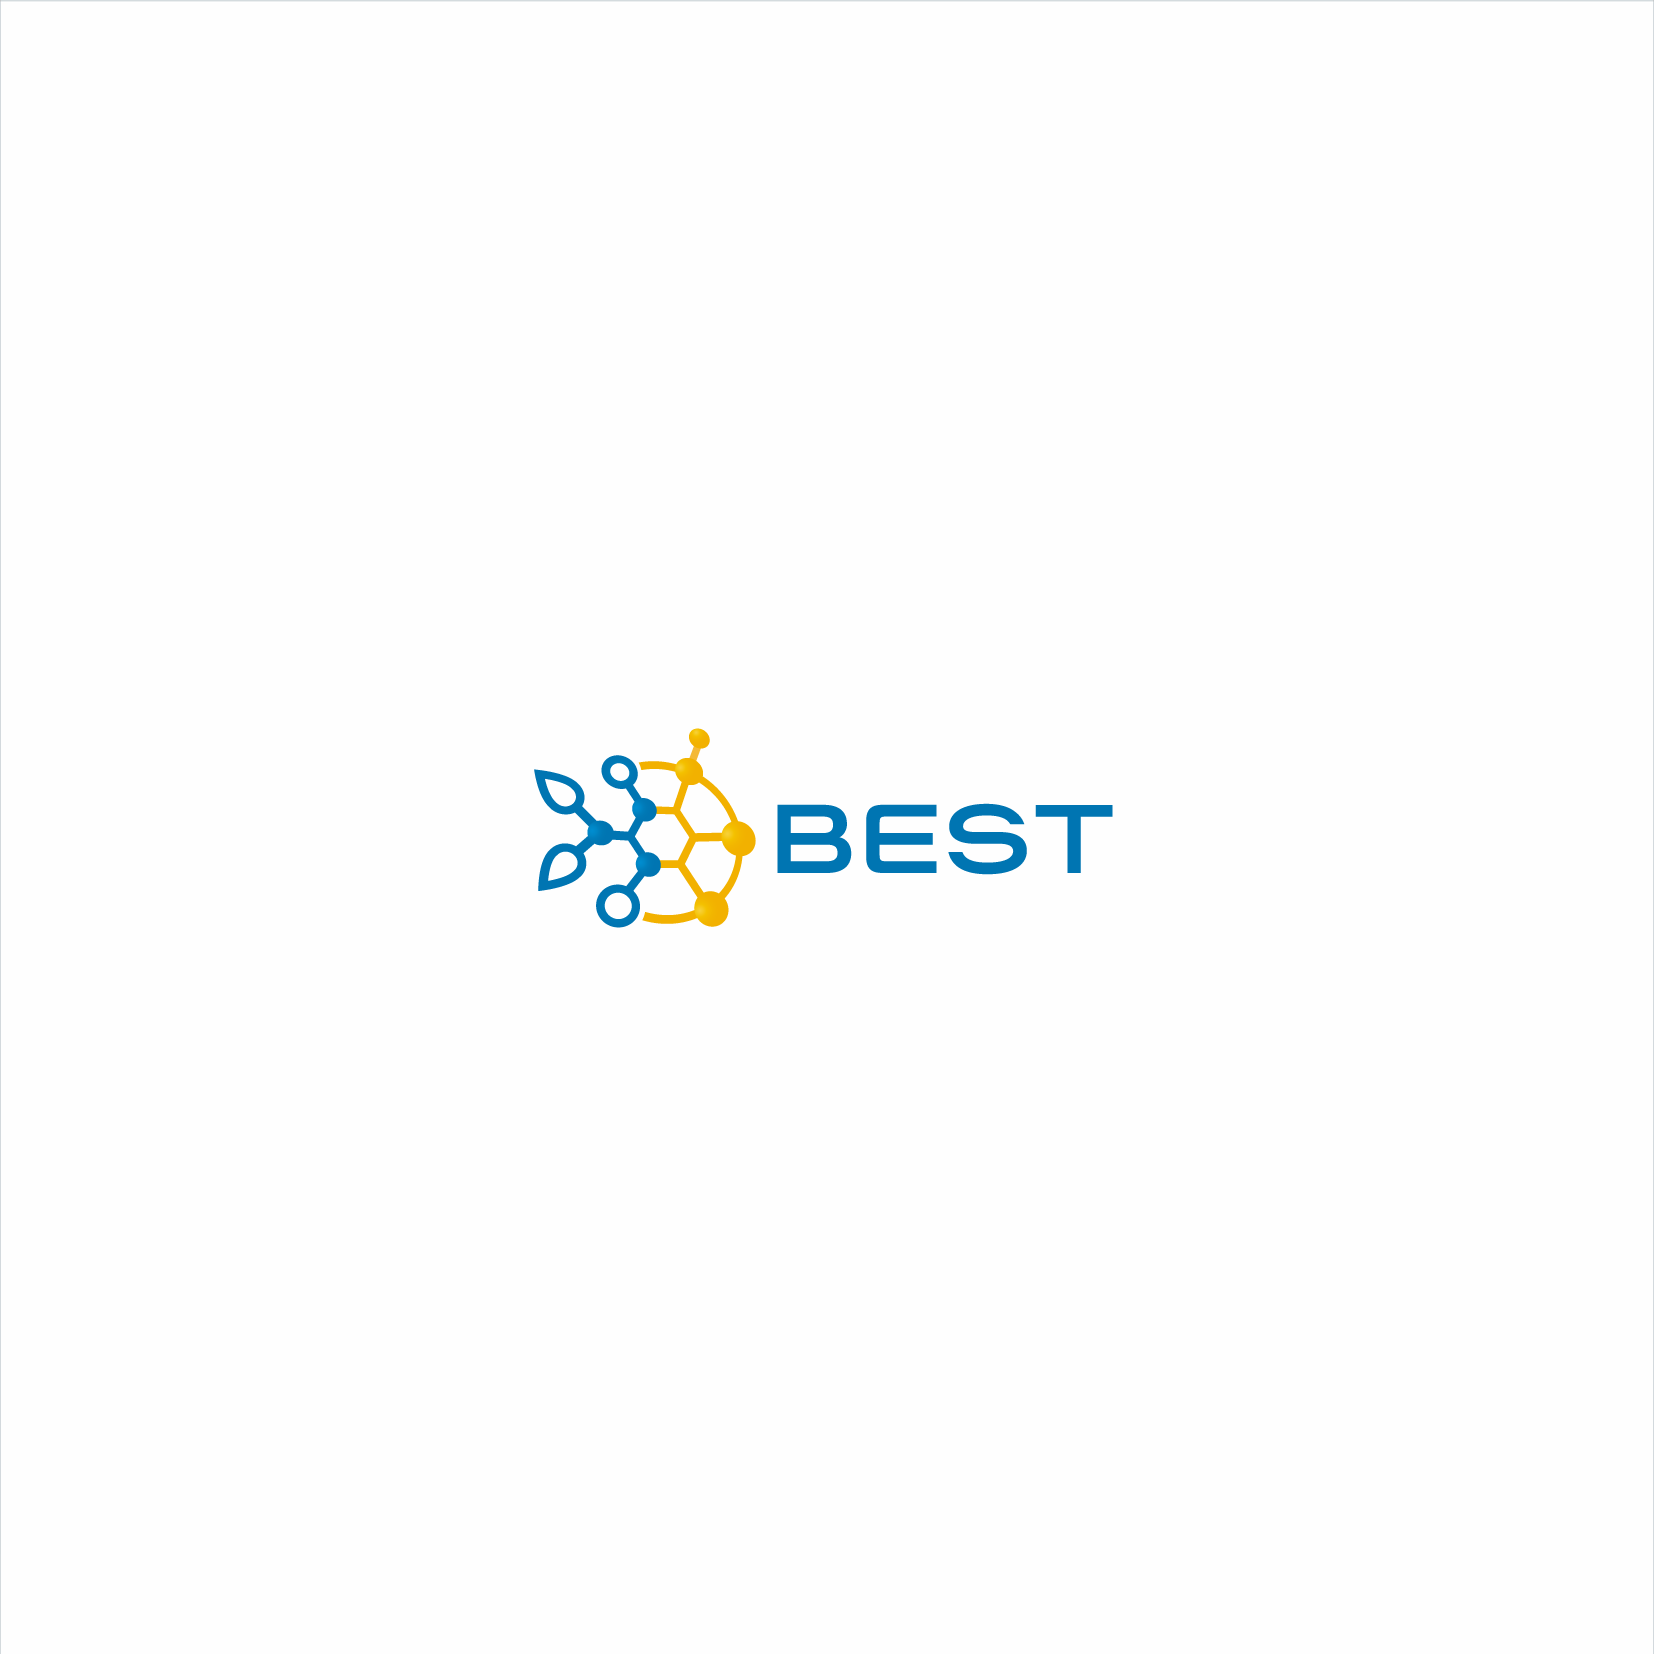 Research project (BEST) on energy needs a logo and website